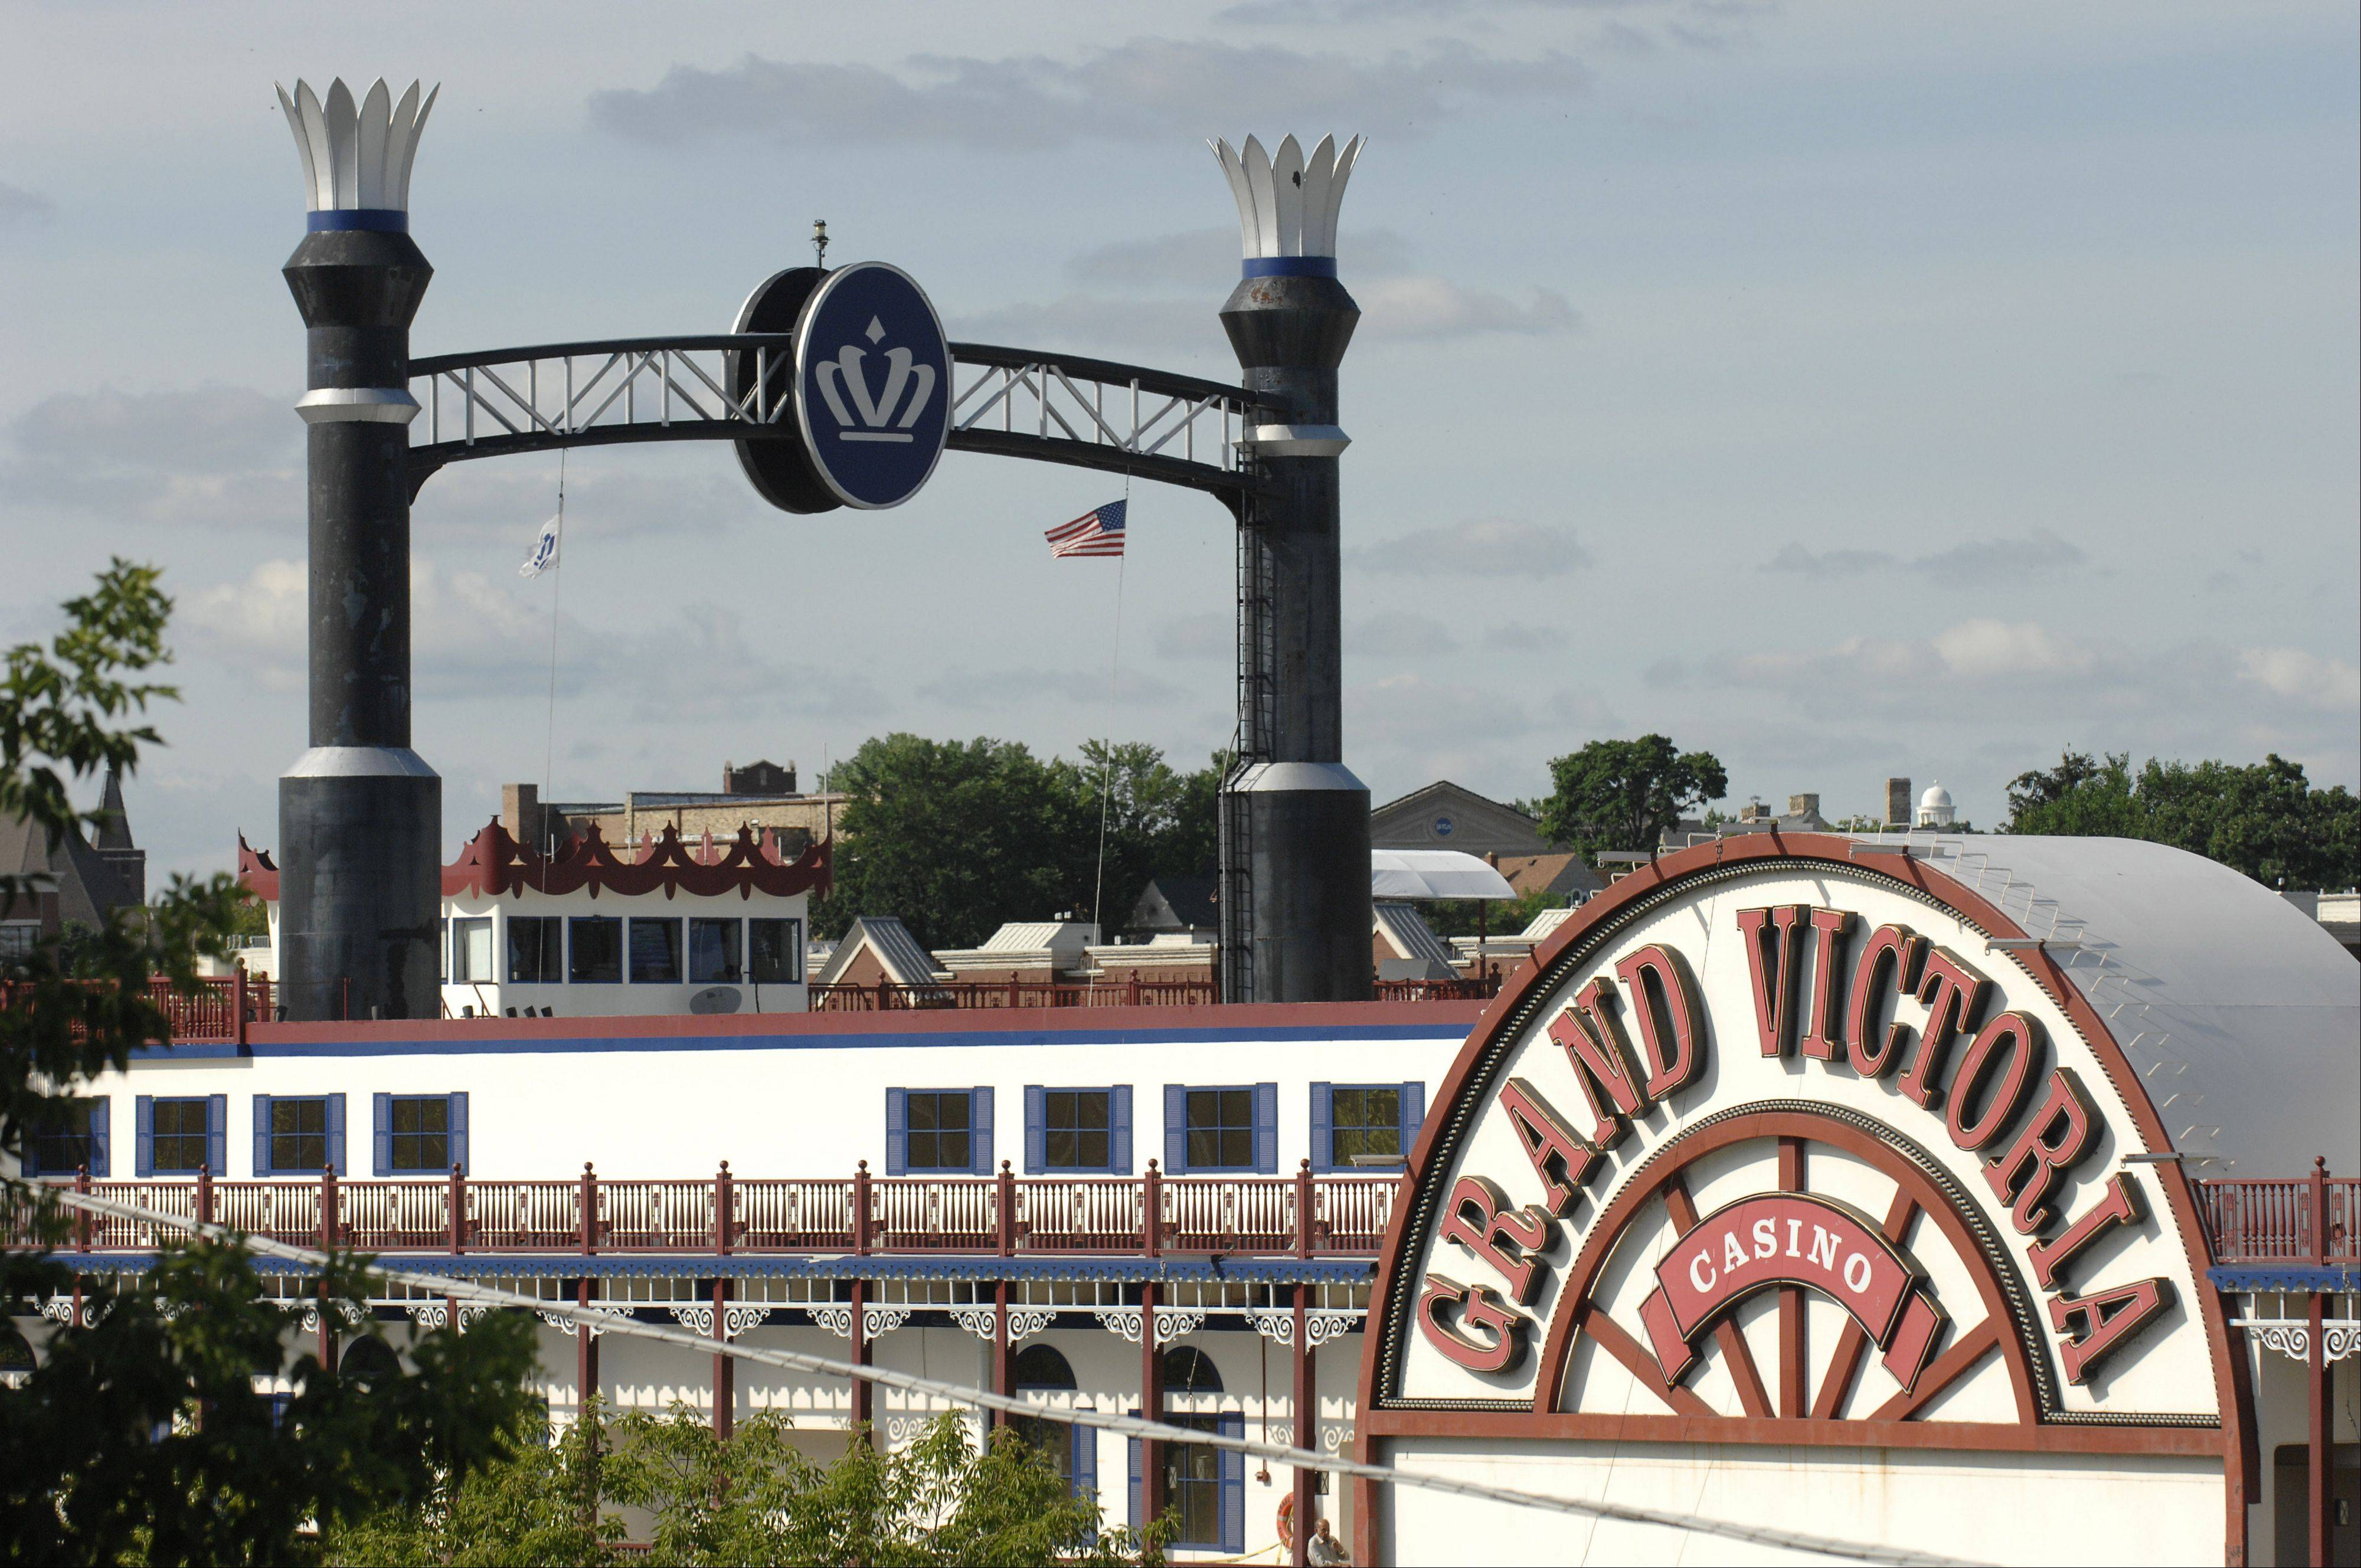 Revenues from the Grand Victoria Casino are the major engine of infrastructure improvements and capital purchases in Elgin. City officials say they will have to seek alternative revenue sources if the Rivers Casino has a significant impact on the Grand Victoria's bottom line.